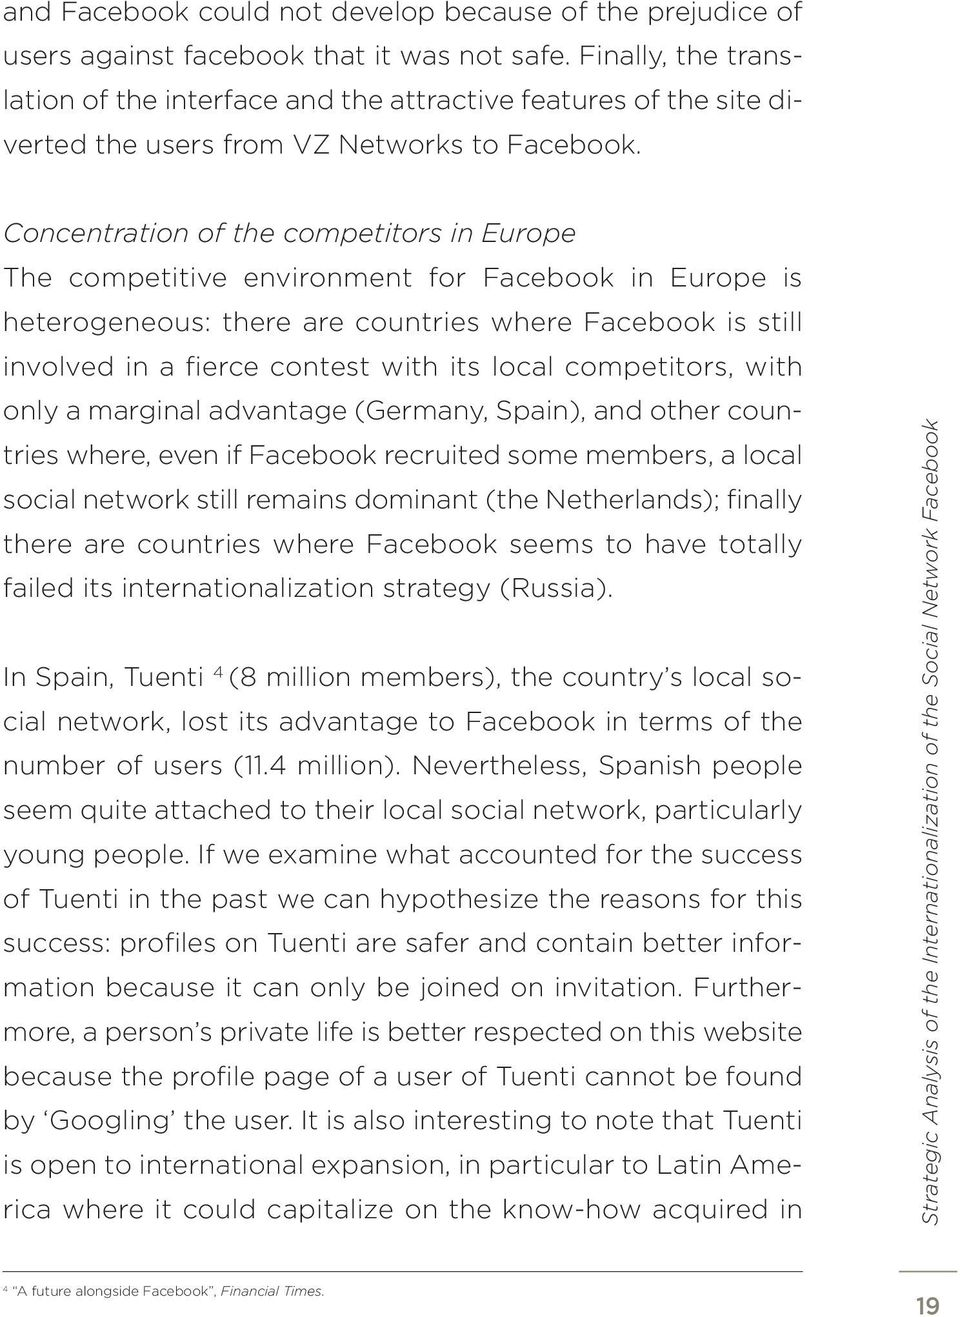 Concentration of the competitors in Europe The competitive environment for Facebook in Europe is heterogeneous: there are countries where Facebook is still involved in a fierce contest with its local